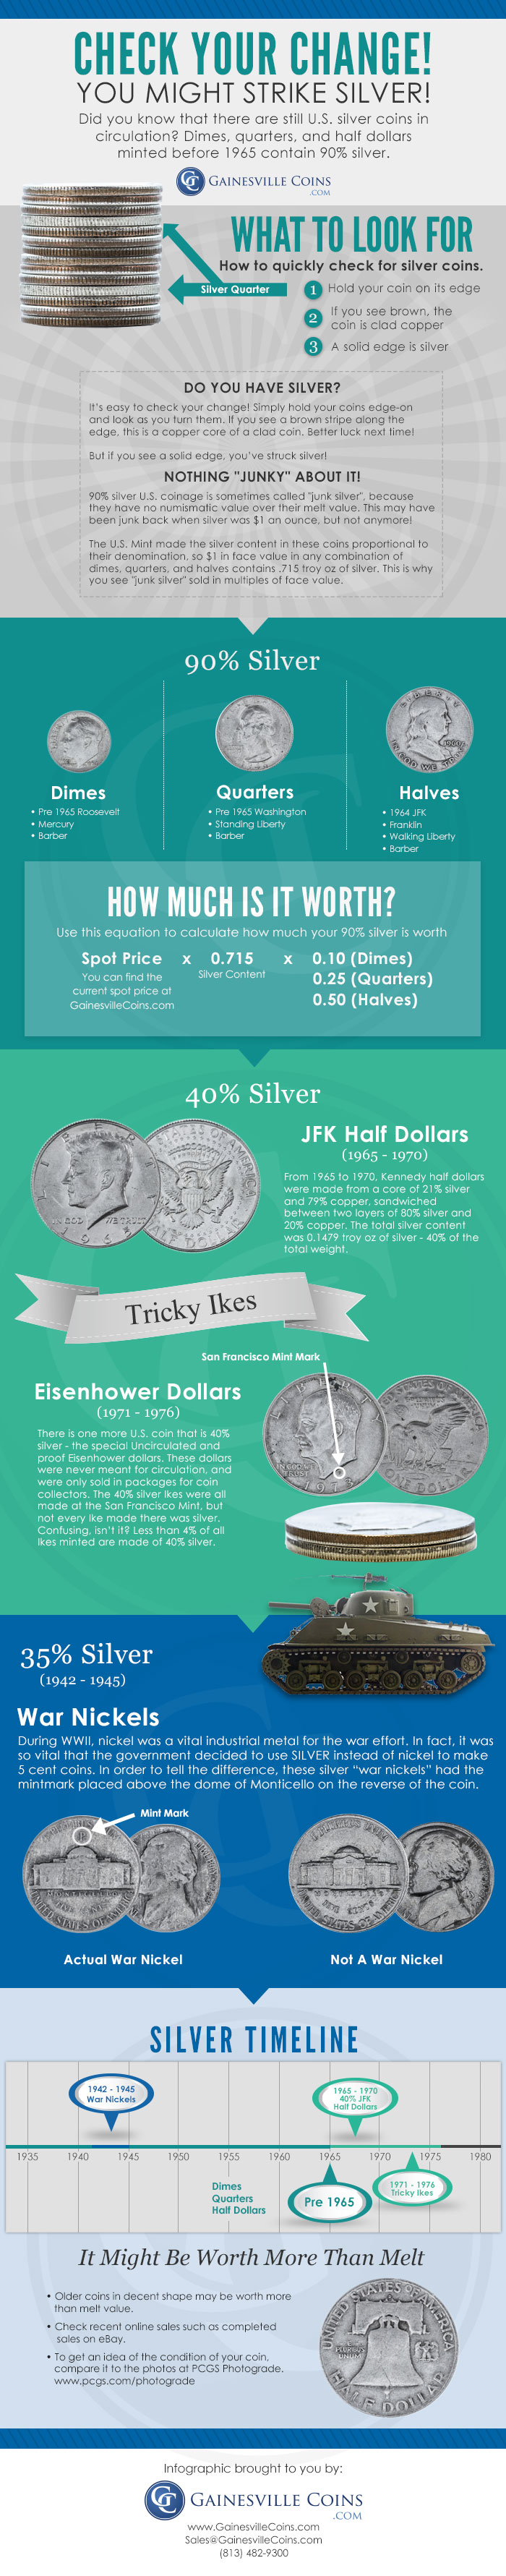 check-your-change-infographic